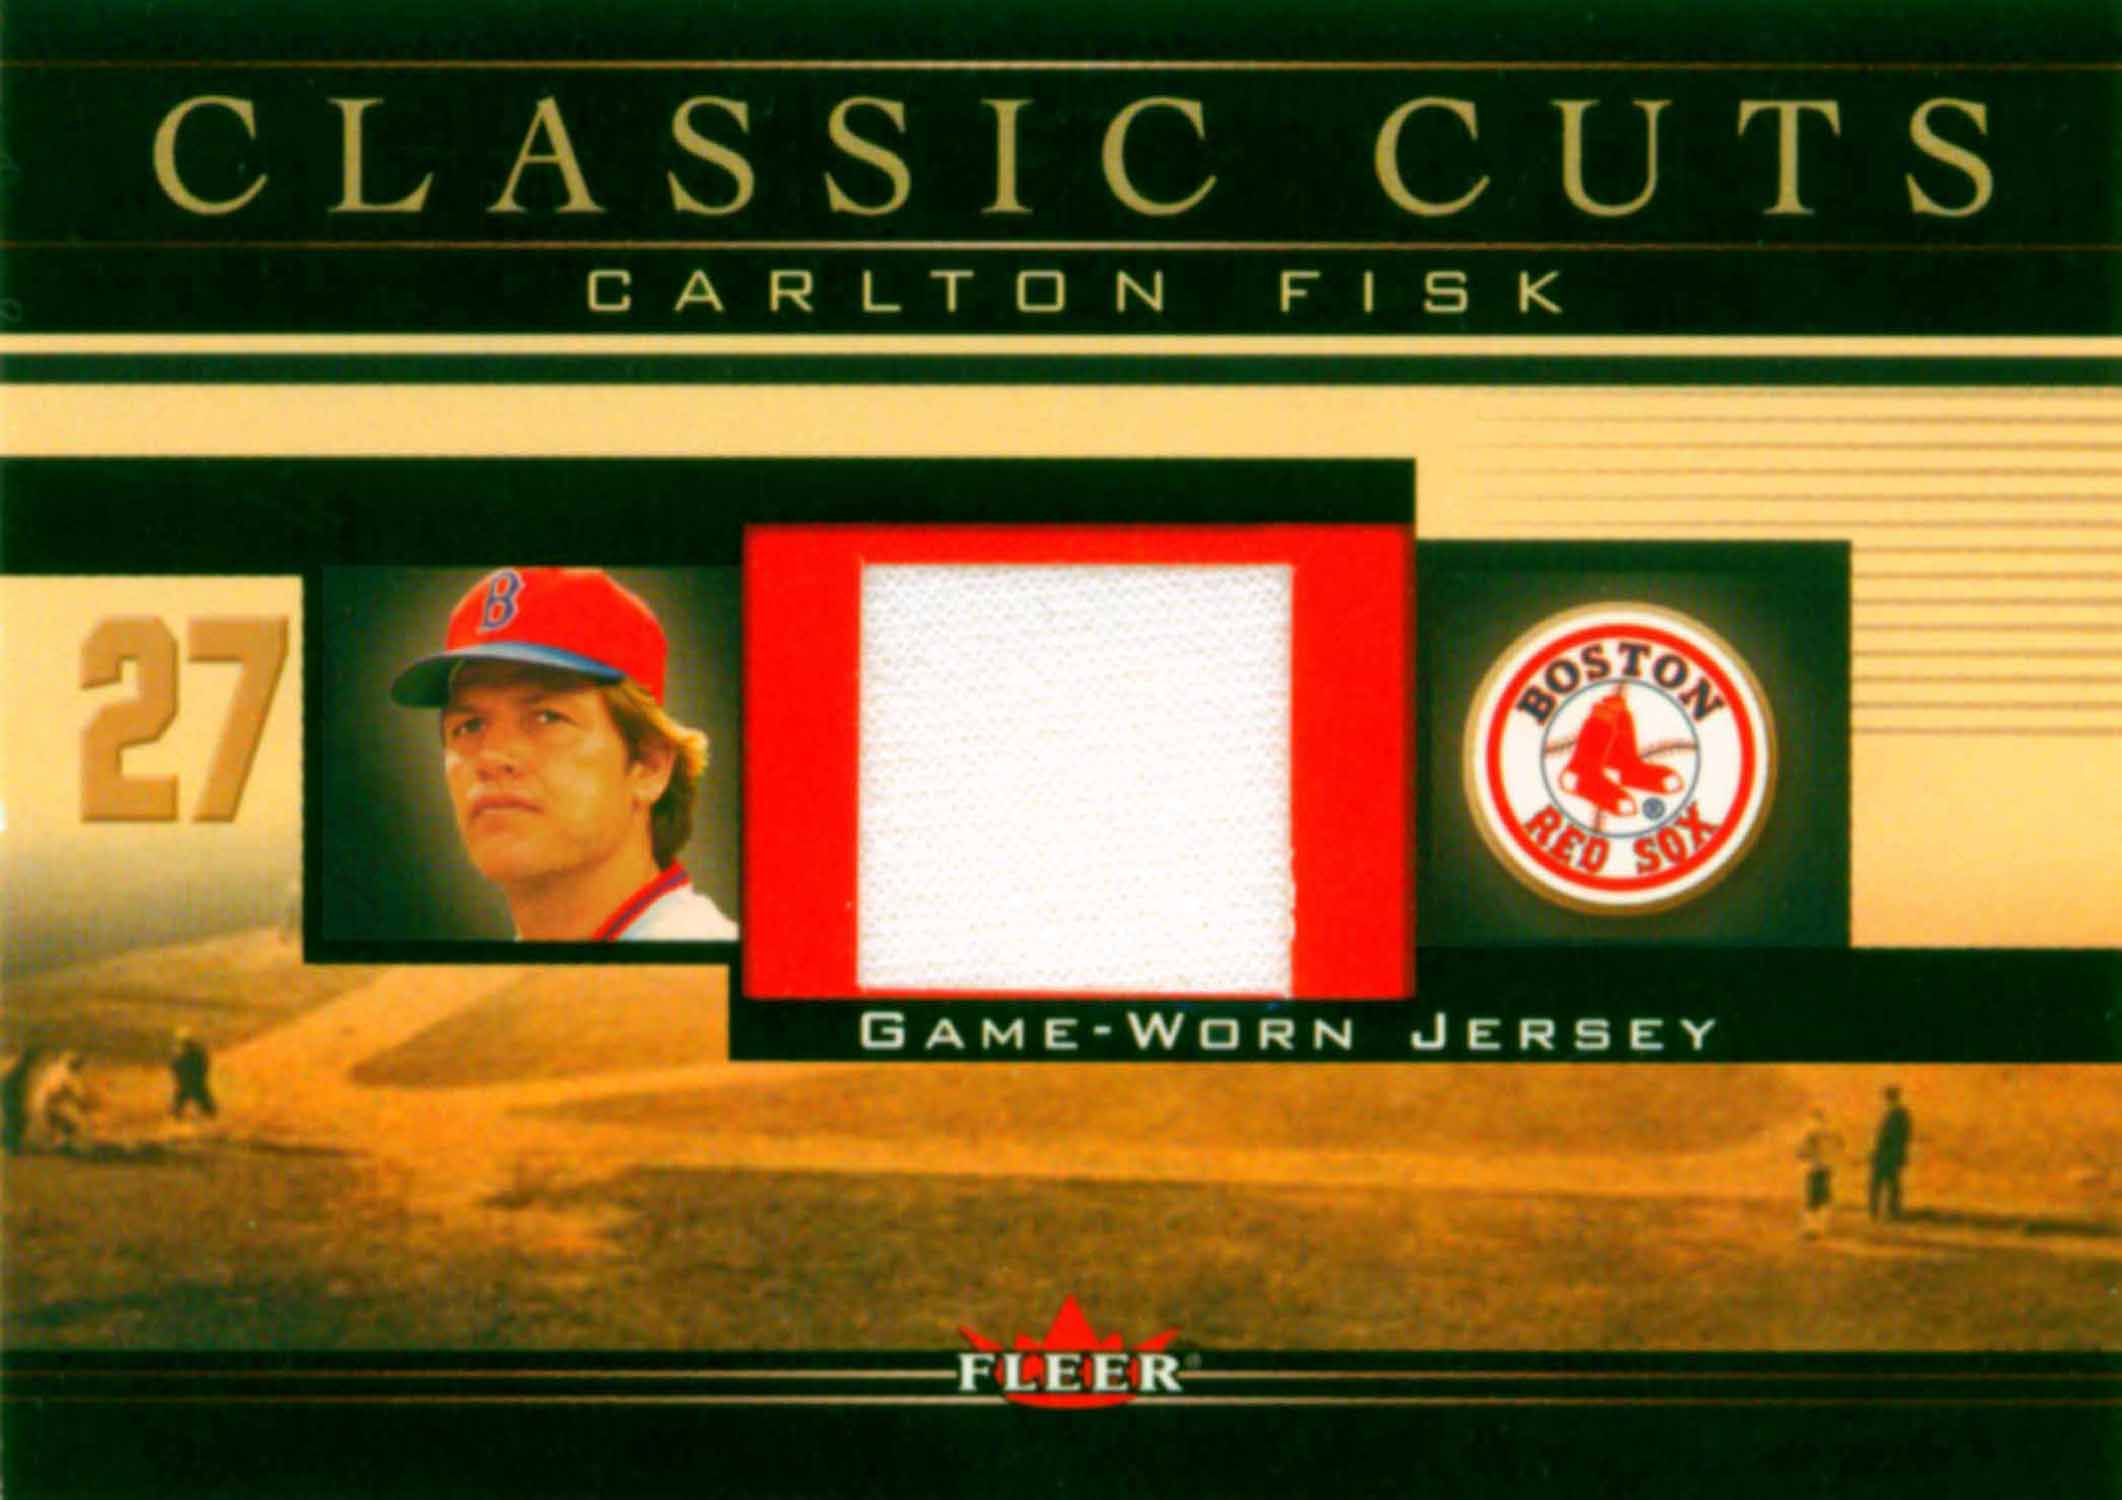 2002 Fleer Classic Cuts Game Used Jersey